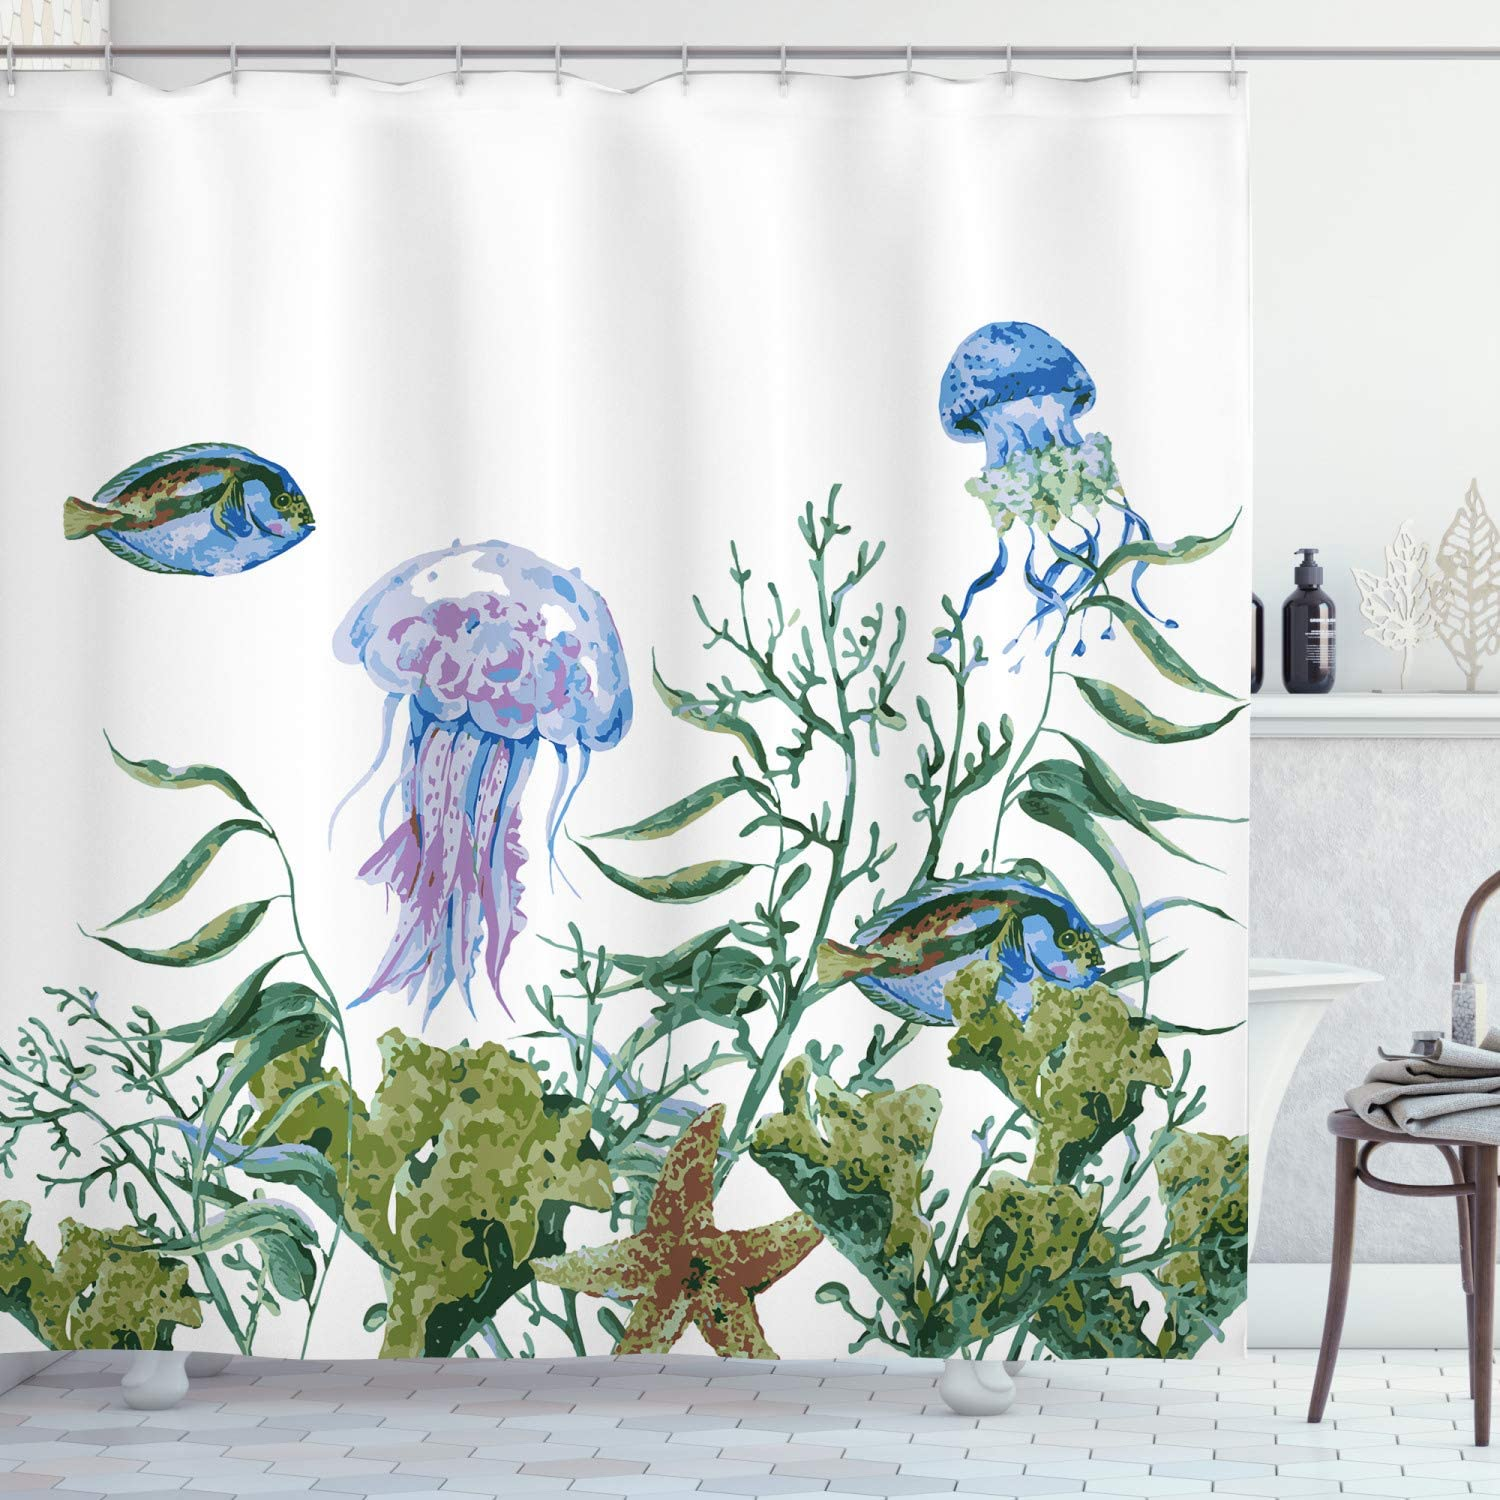 Ambesonne Ocean Shower Curtain, Watercolor Style Effect Sea Life Pattern with Seaweed Jellyfish and Fish, Cloth Fabric Bathroom Decor Set with Hooks, 70